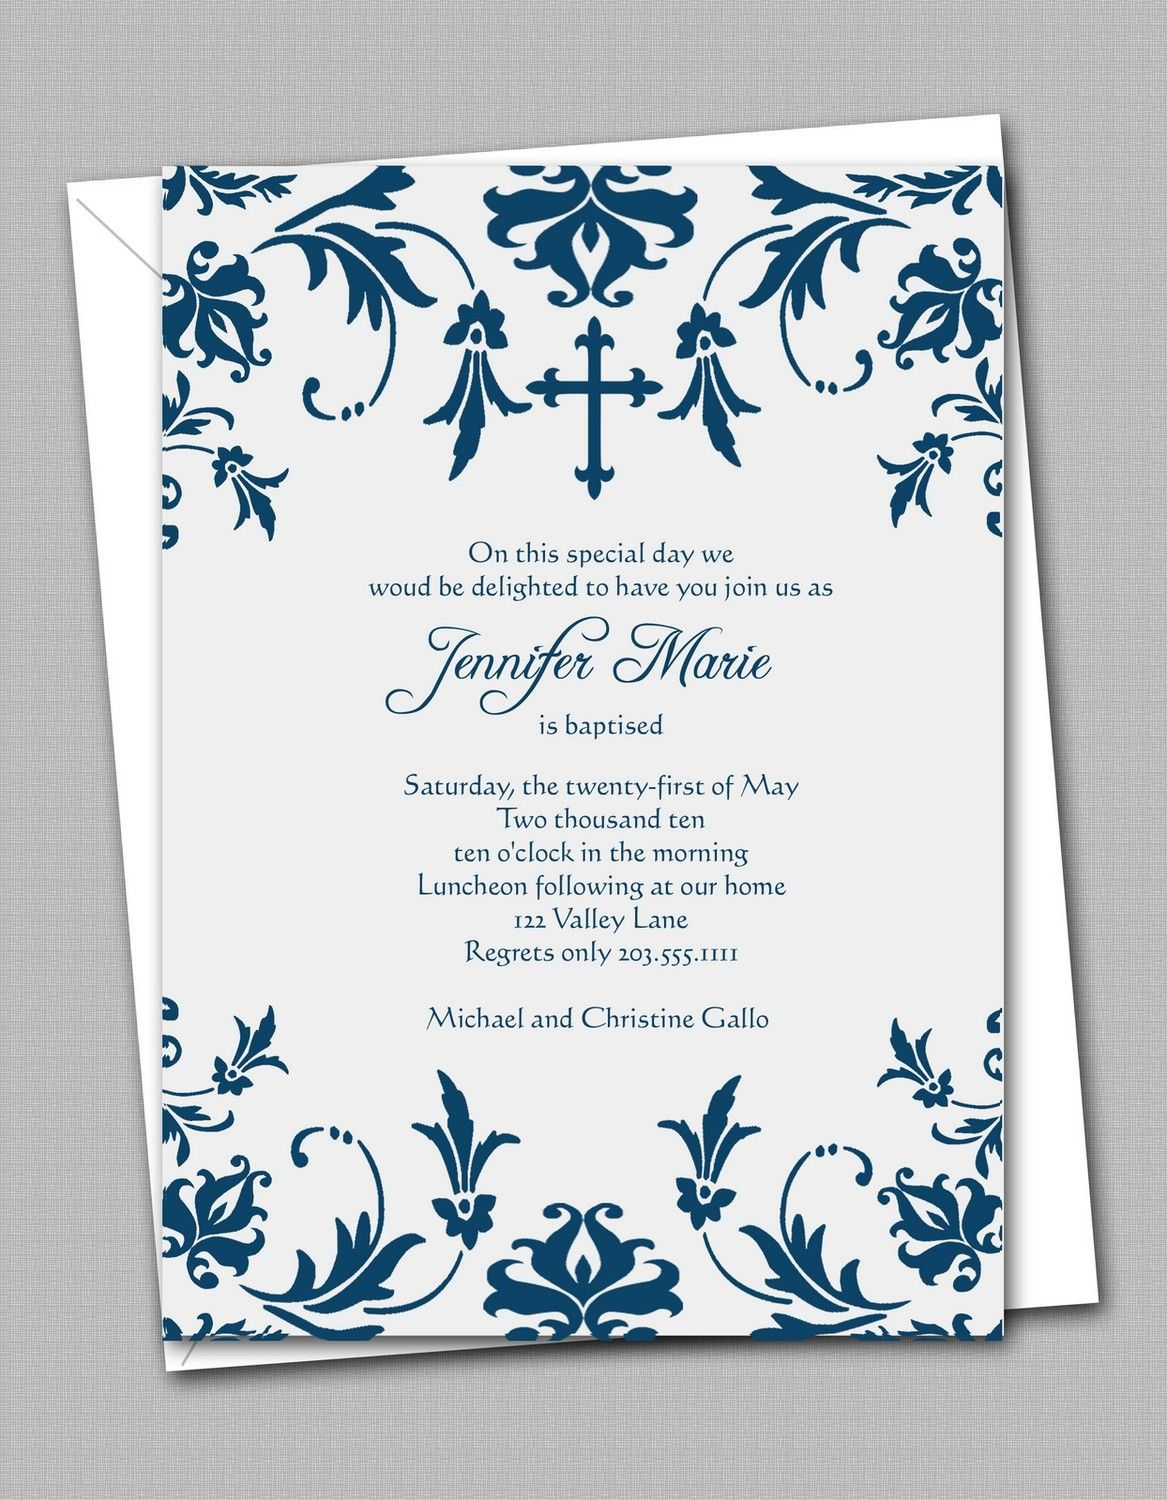 confirmation invitations posts related to printable confirmation invitations posts related to printable confirmation invitation templates